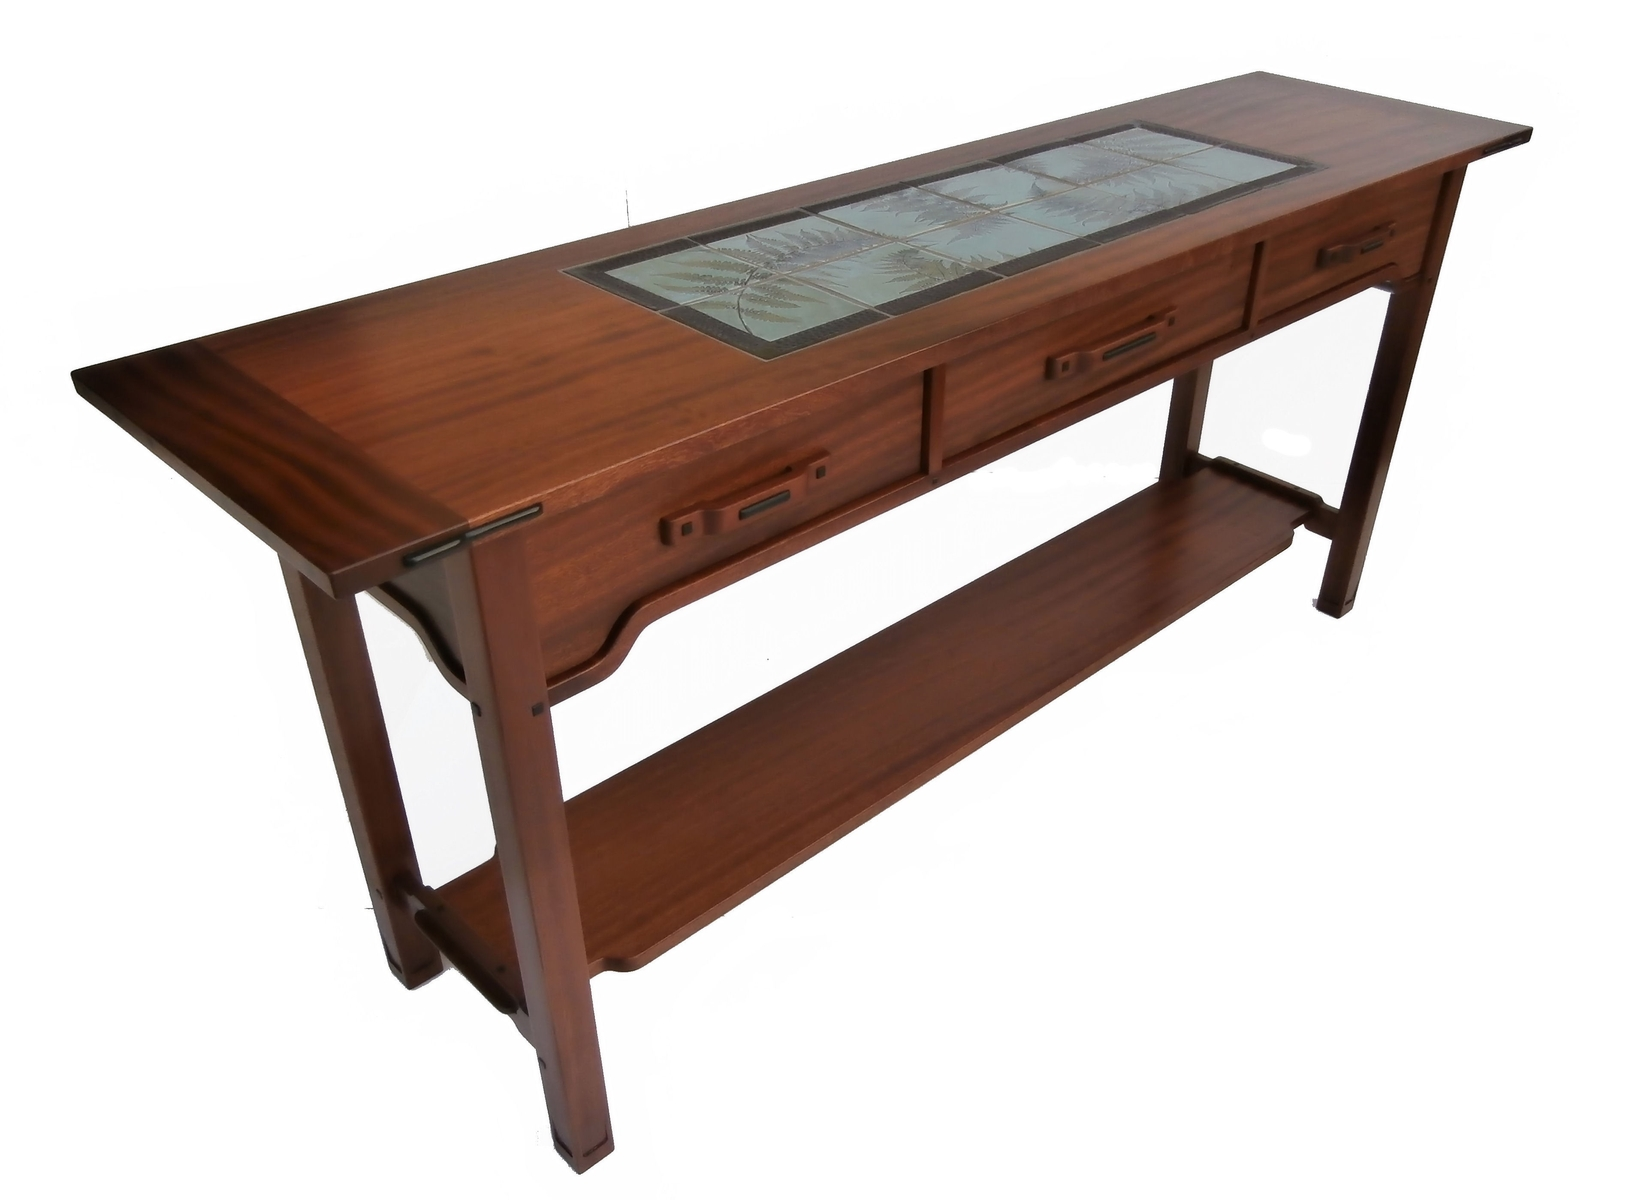 Brian brace greene greene desk for Furniture yakima